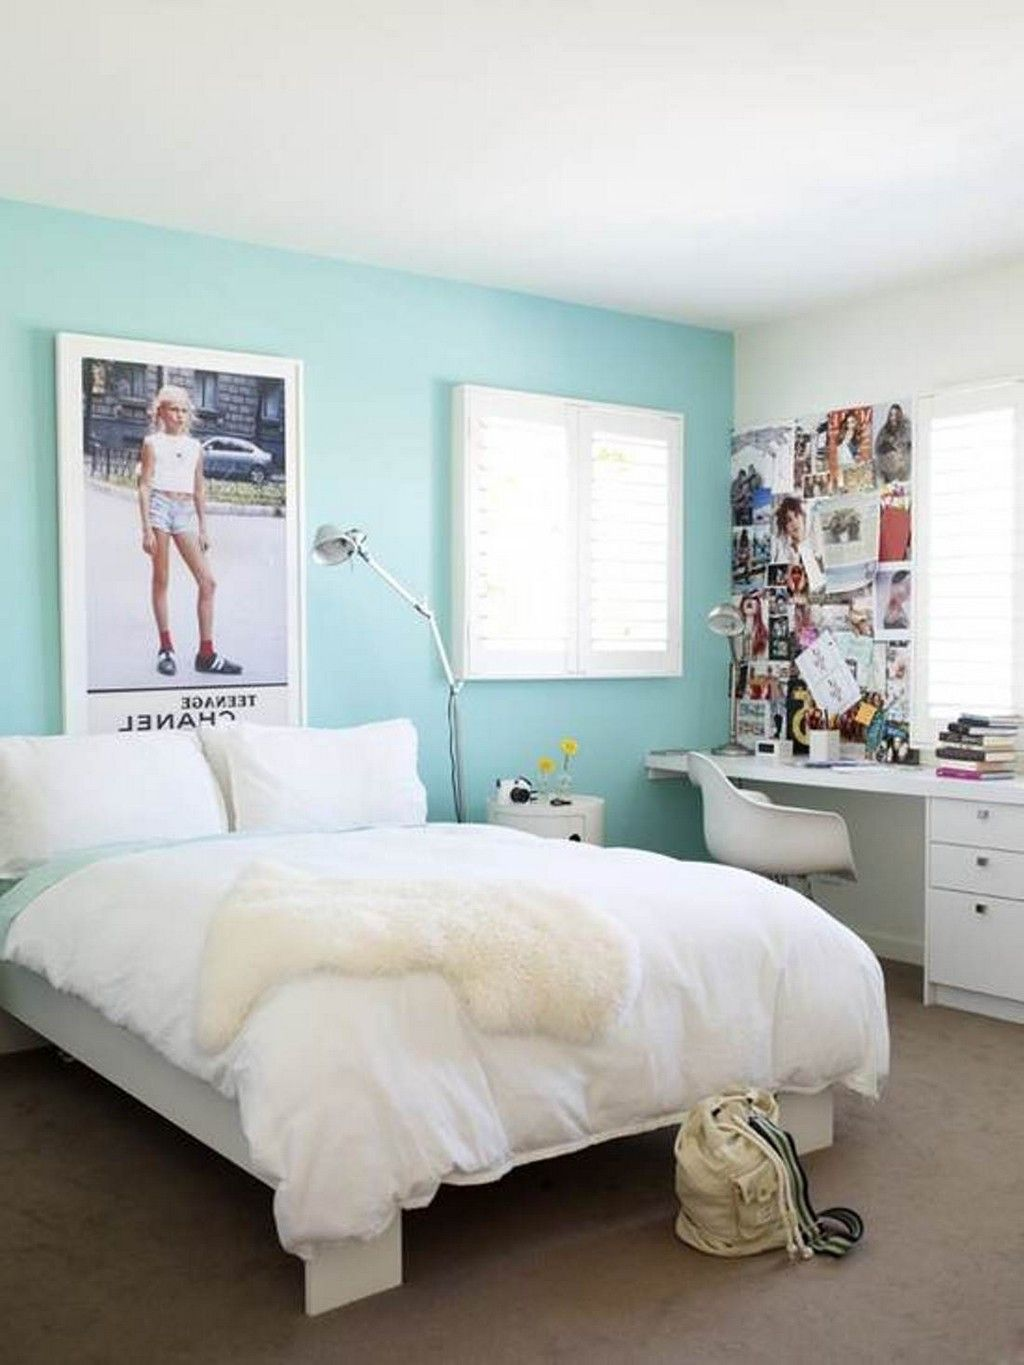 Blue bedroom color design - Bedroom Calming Blue Paint Colors For Small Teen Bedroom Ideas